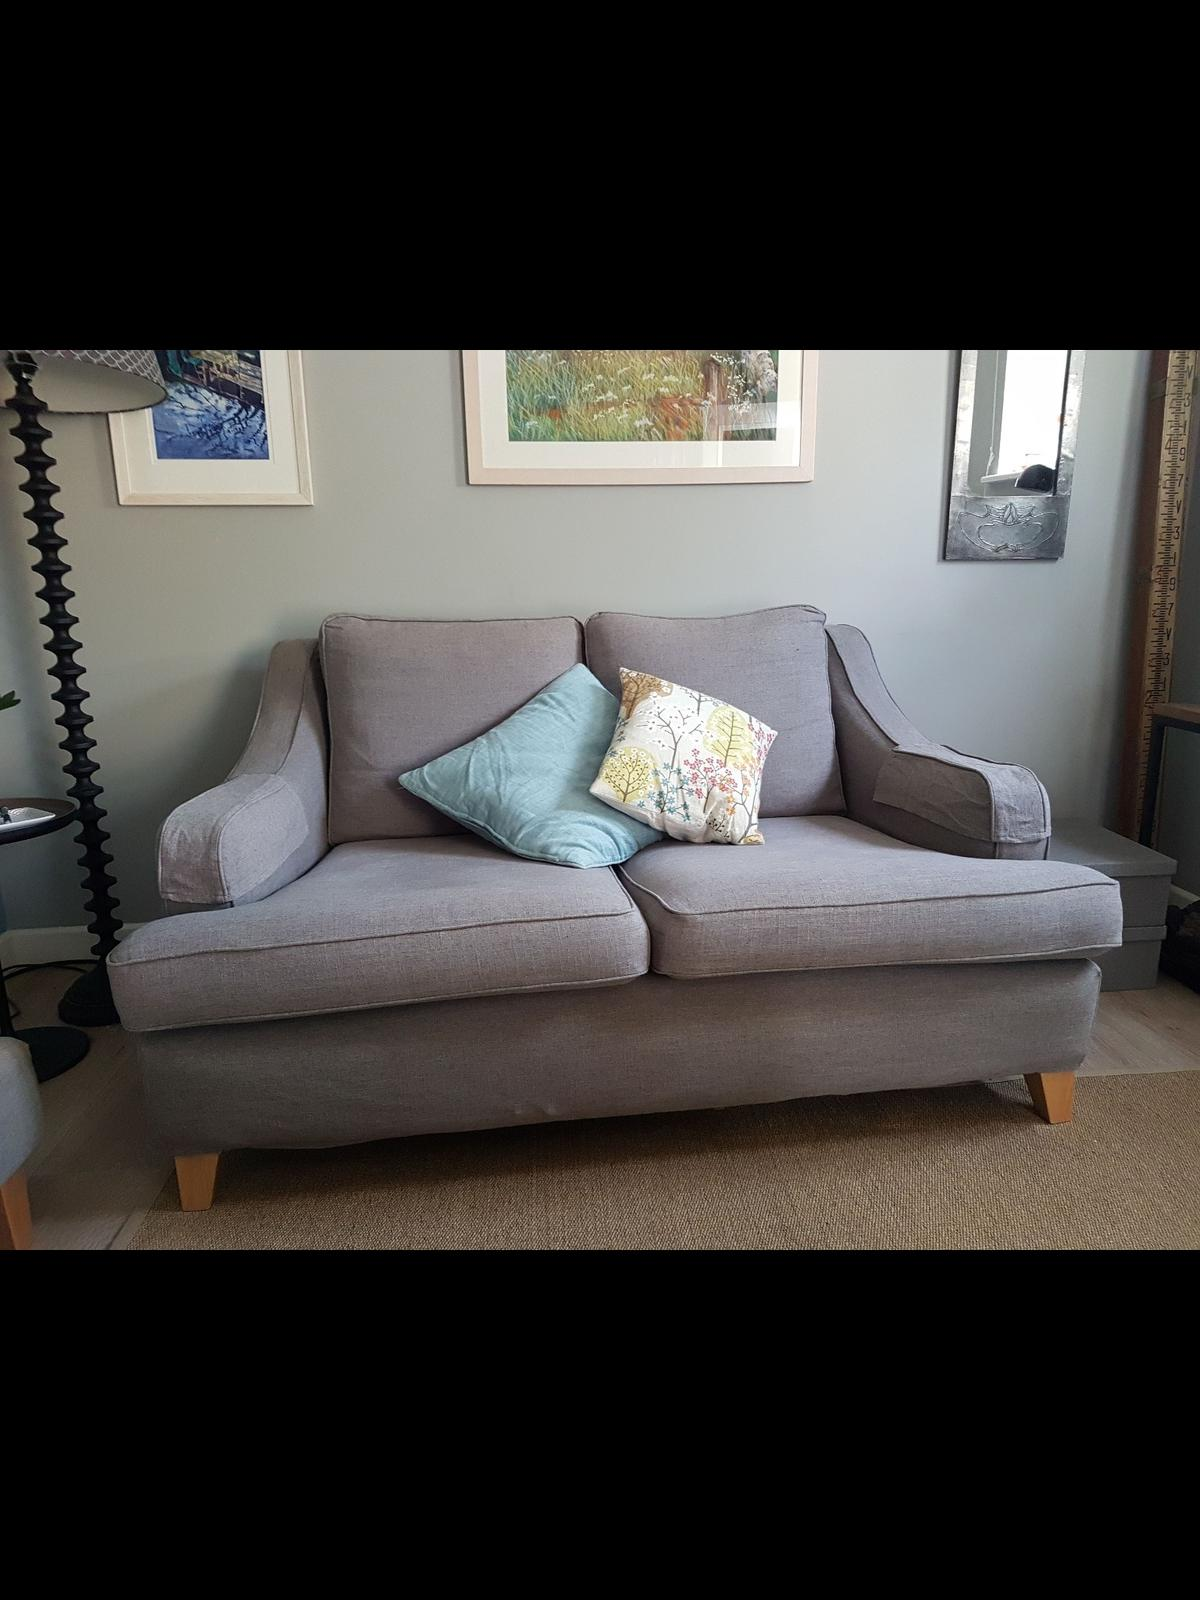 Multiyork Long Island Small Sofas in Cotswold for £200.00 ...